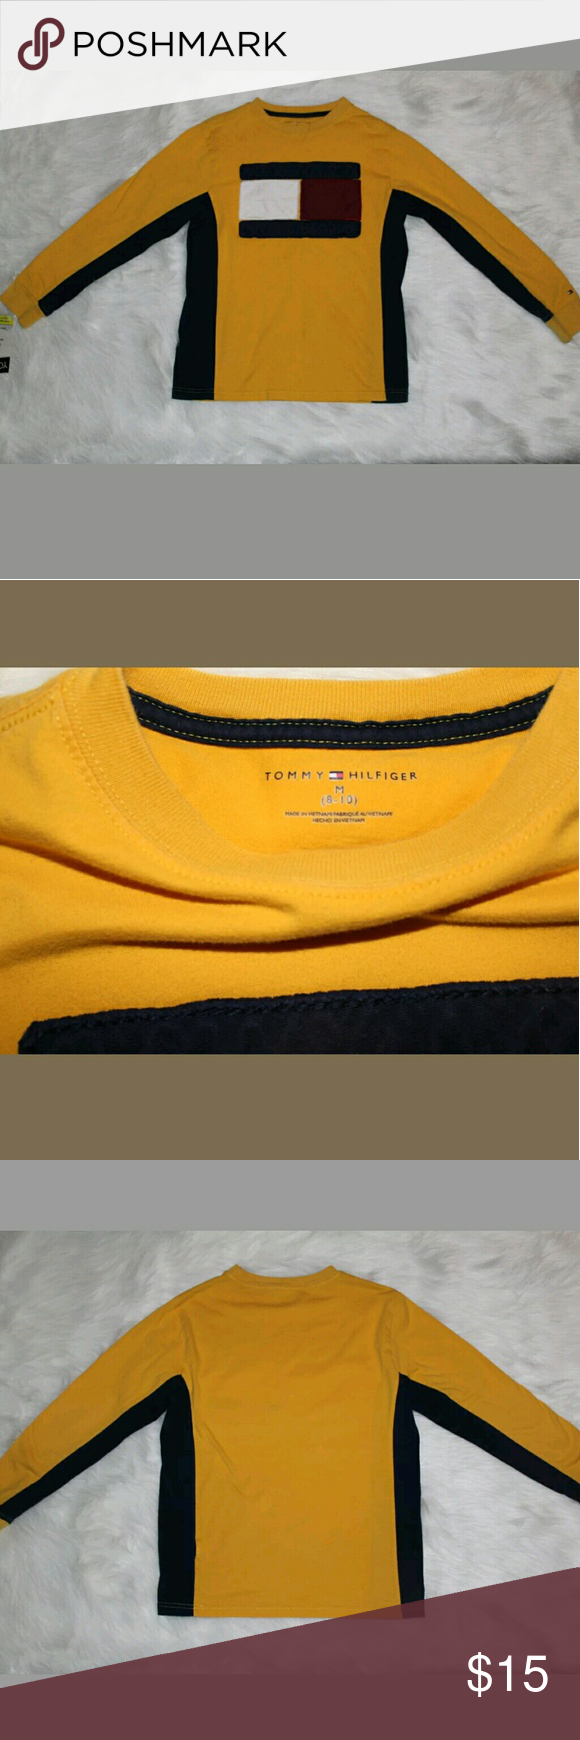 Tommy Hilfiger Boy's Long Sleeve Shirt Size M Tommy Hilfiger Boy's Long Sleeve Shirt. Size M (8-10) Excellent condition, gently used. No Stains, no holes. Tommy Hilfiger Shirts & Tops Tees - Long Sleeve